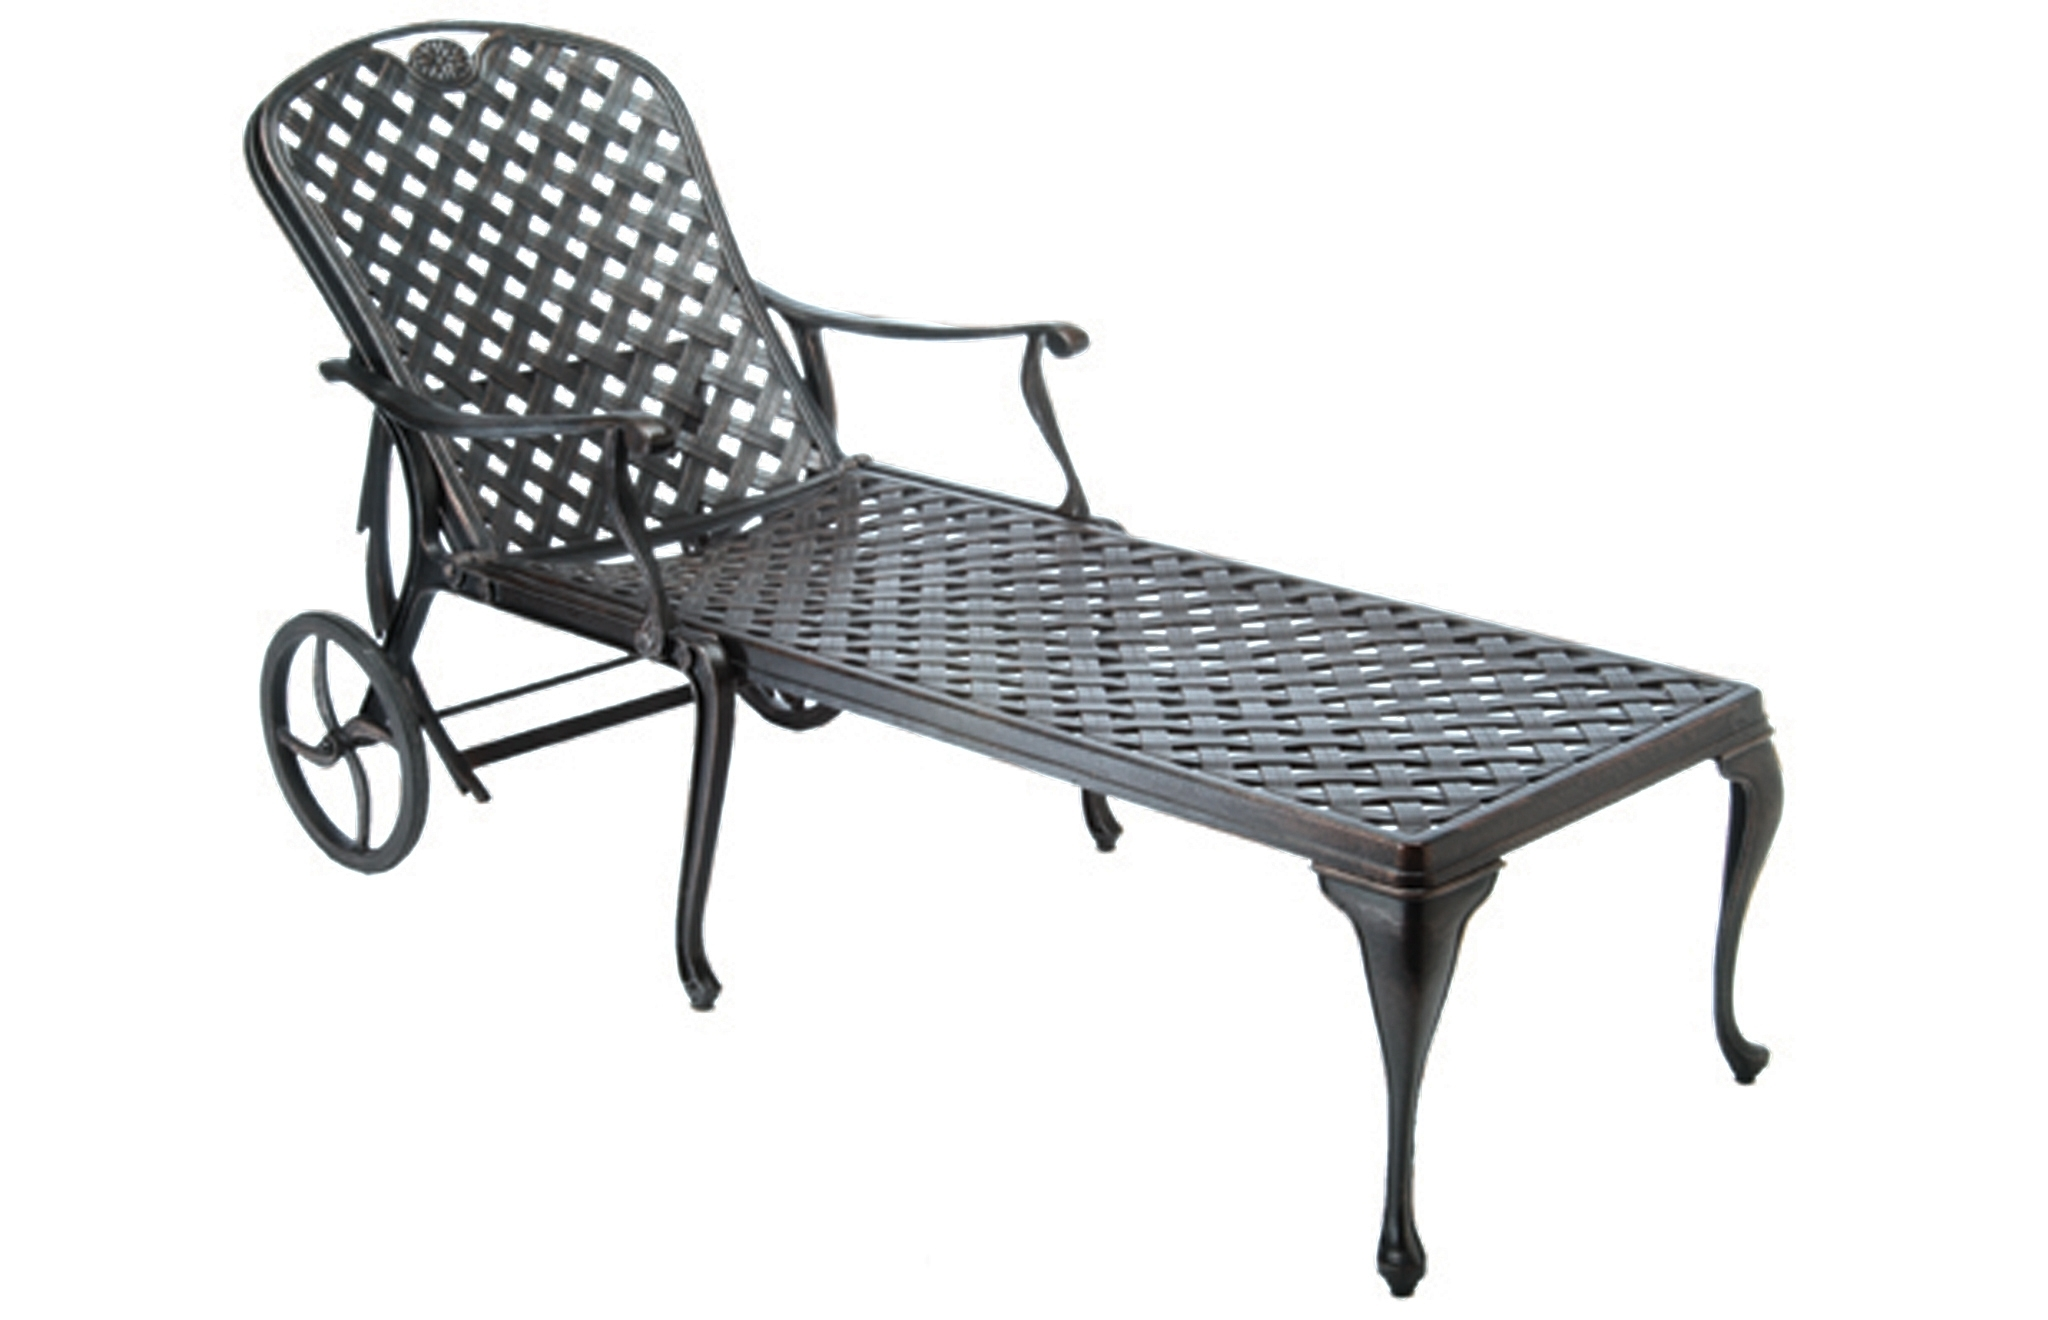 Best And Newest Fall: The Best Season For Entertaining With Outdoor Furniture Inside Cast Aluminum Chaise Lounges With Wheels (View 3 of 15)